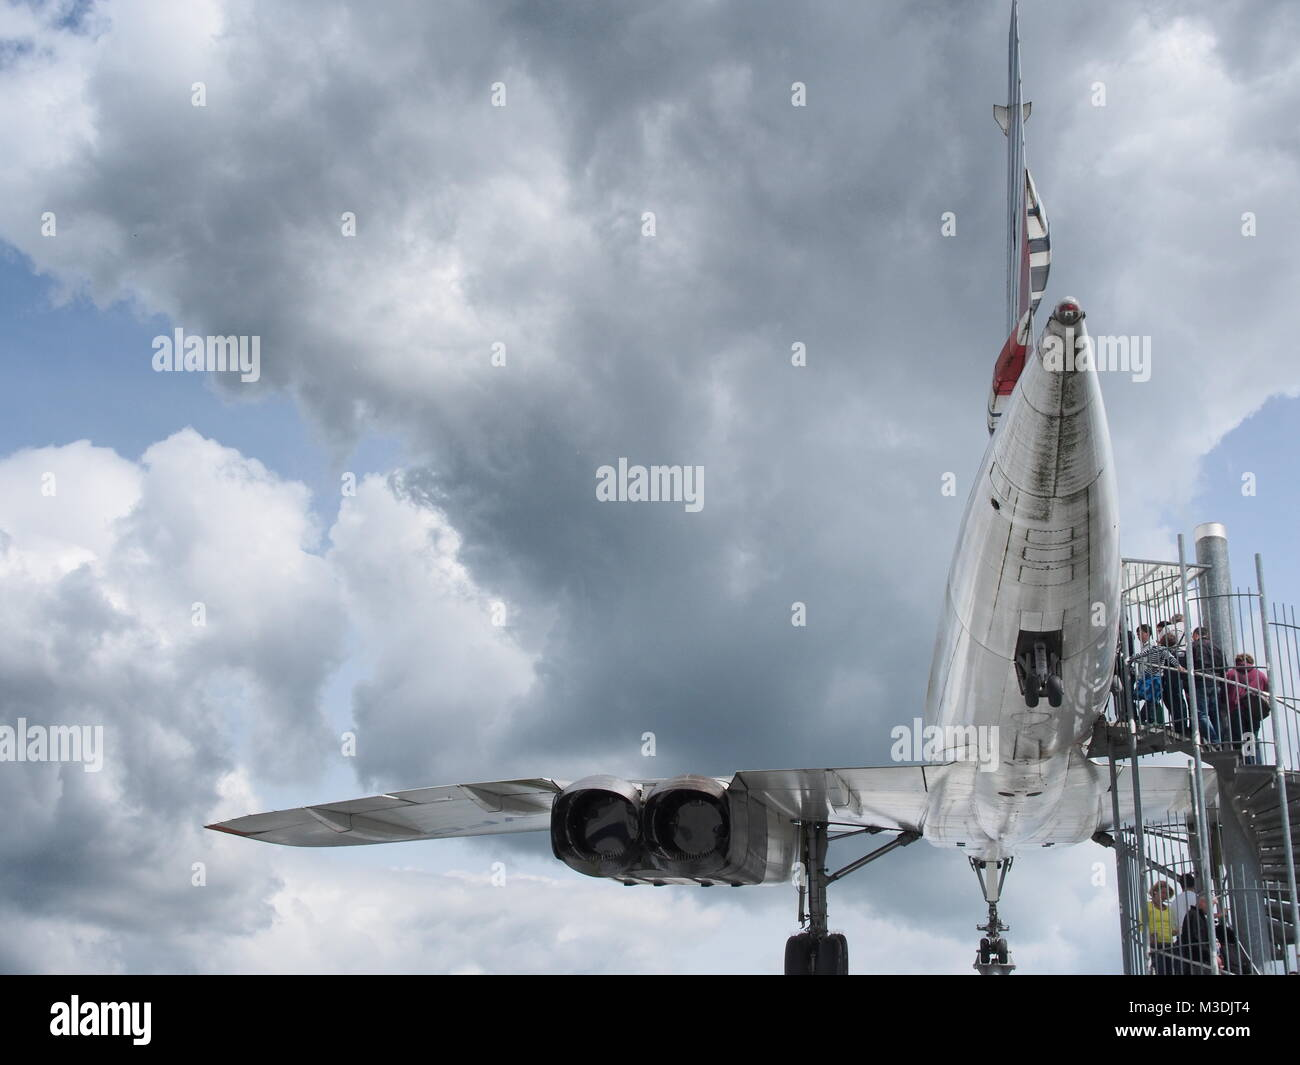 Tourists waiting for their turn to visit the Concorde in Sinsheim technology museum - Stock Image